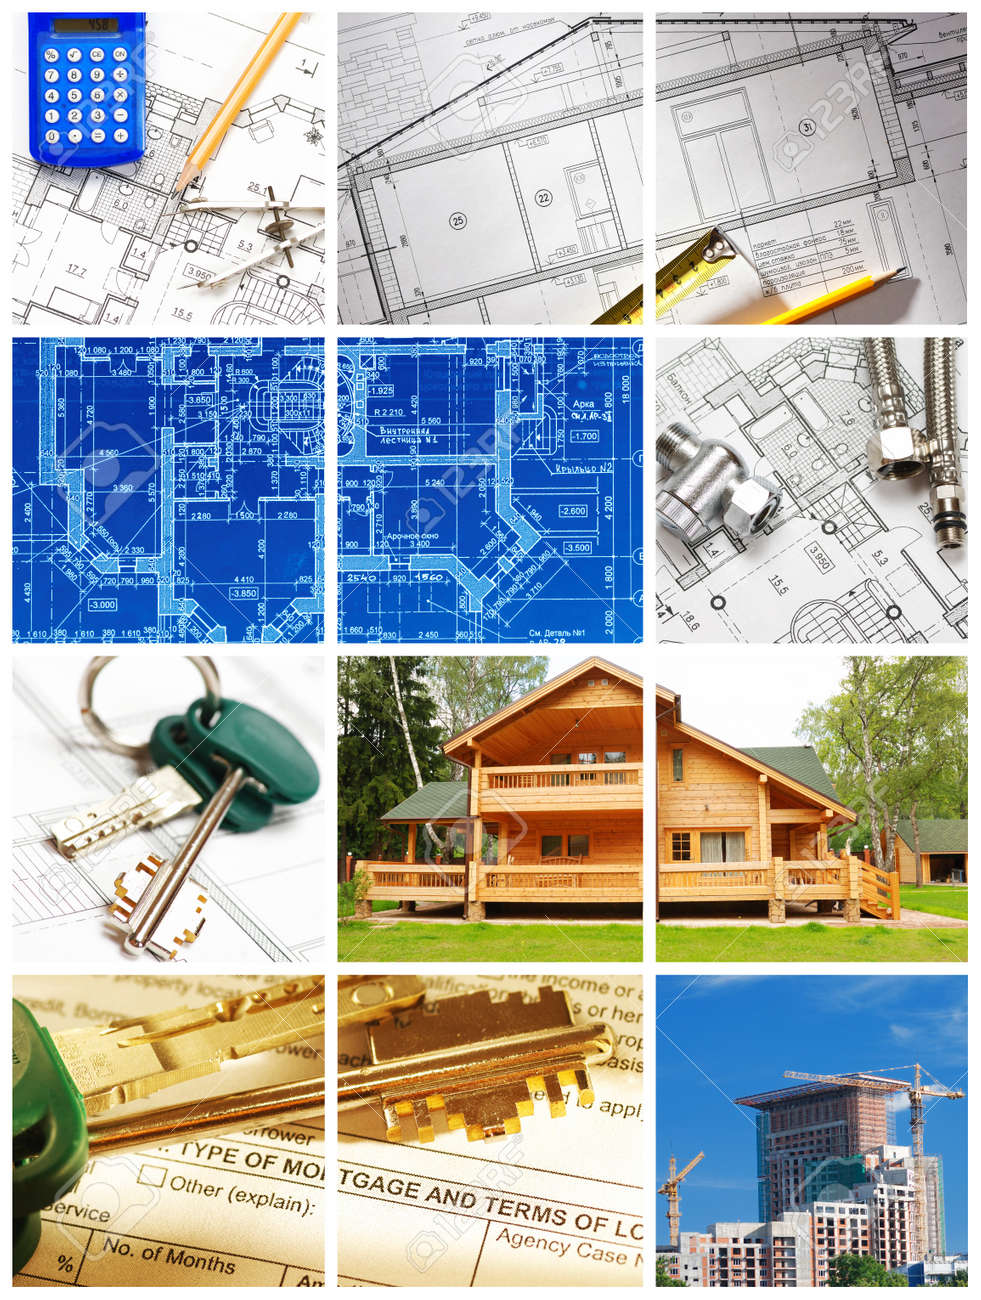 collage made architecture and construction related images collage made architecture and construction related images stock photo 7628740